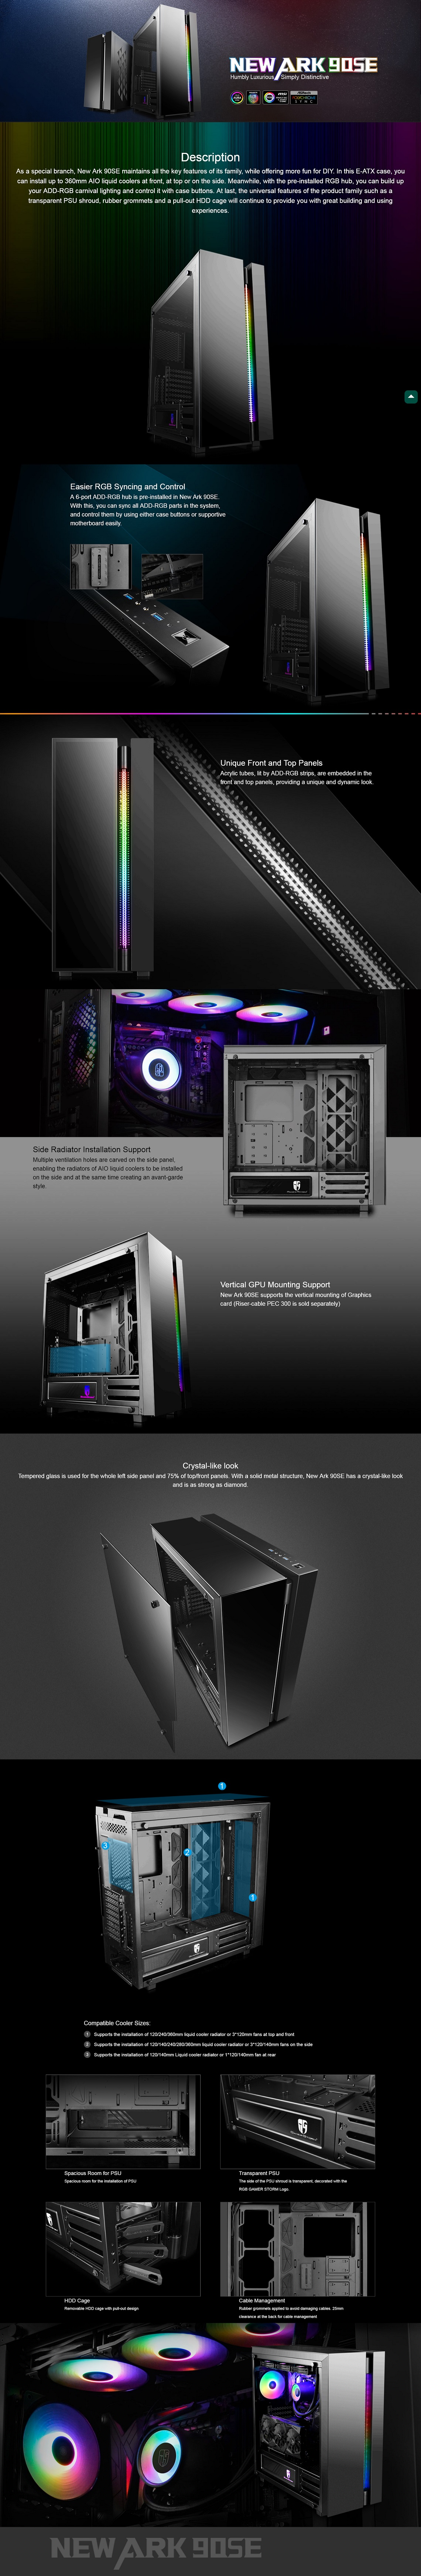 Deepcool Gamerstorm NEW ARK 90SE E-ATX PC Case with ADD-RGB Hub Tempered Glass